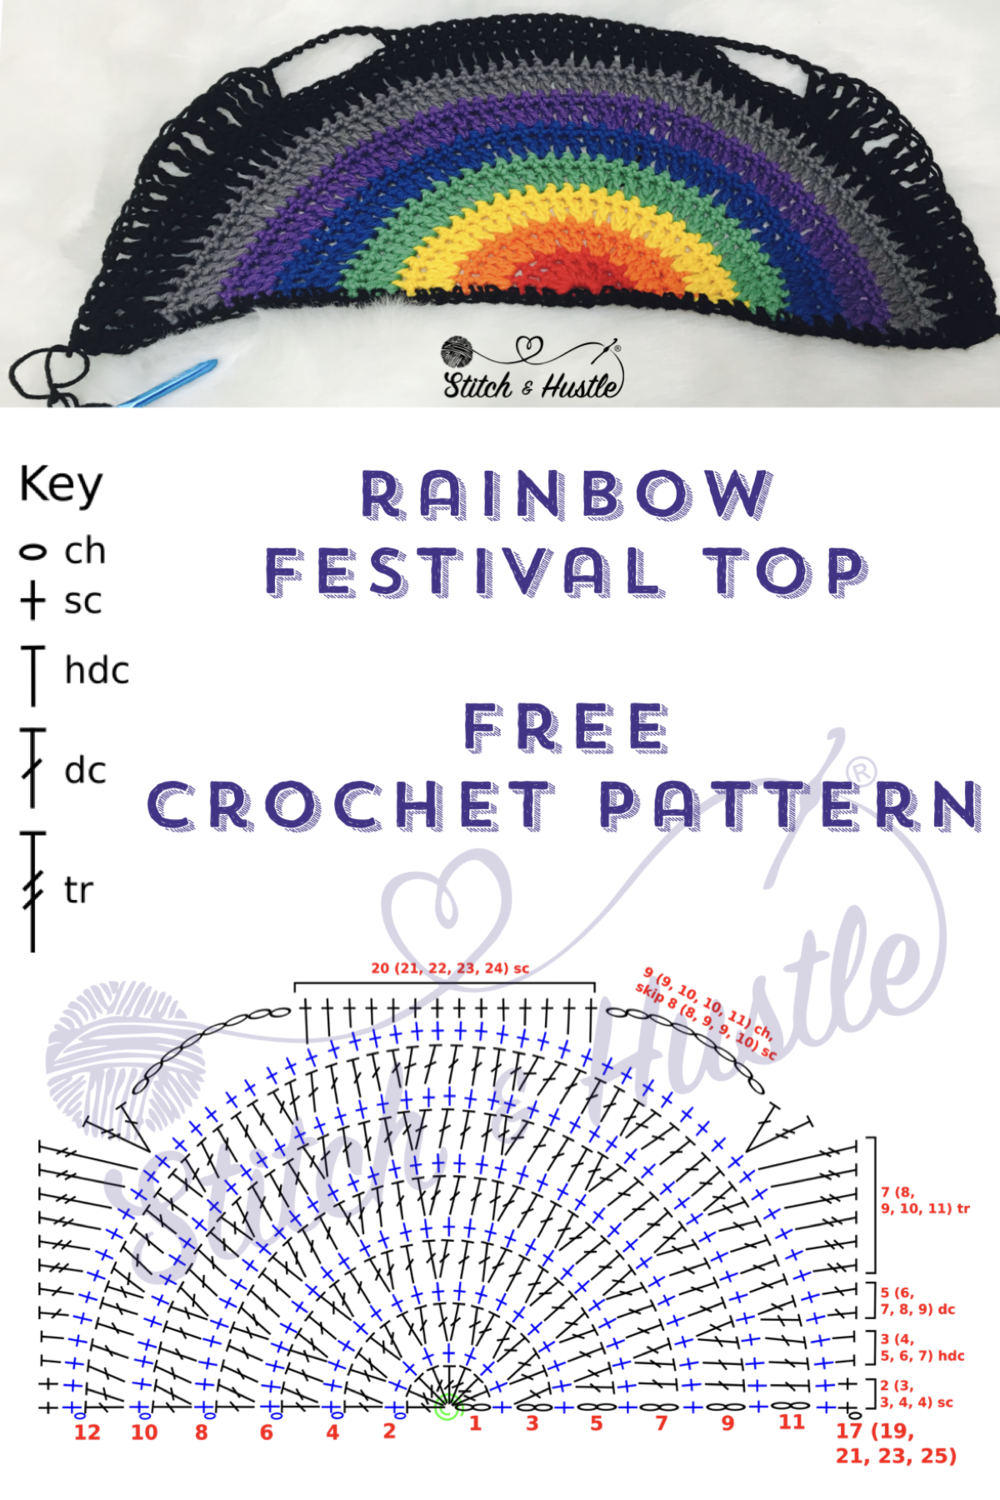 islamorada-summer-festival-crochet-top-free-pattern-stitch-and-hustle-rainbow-stitch-chart.jpeg